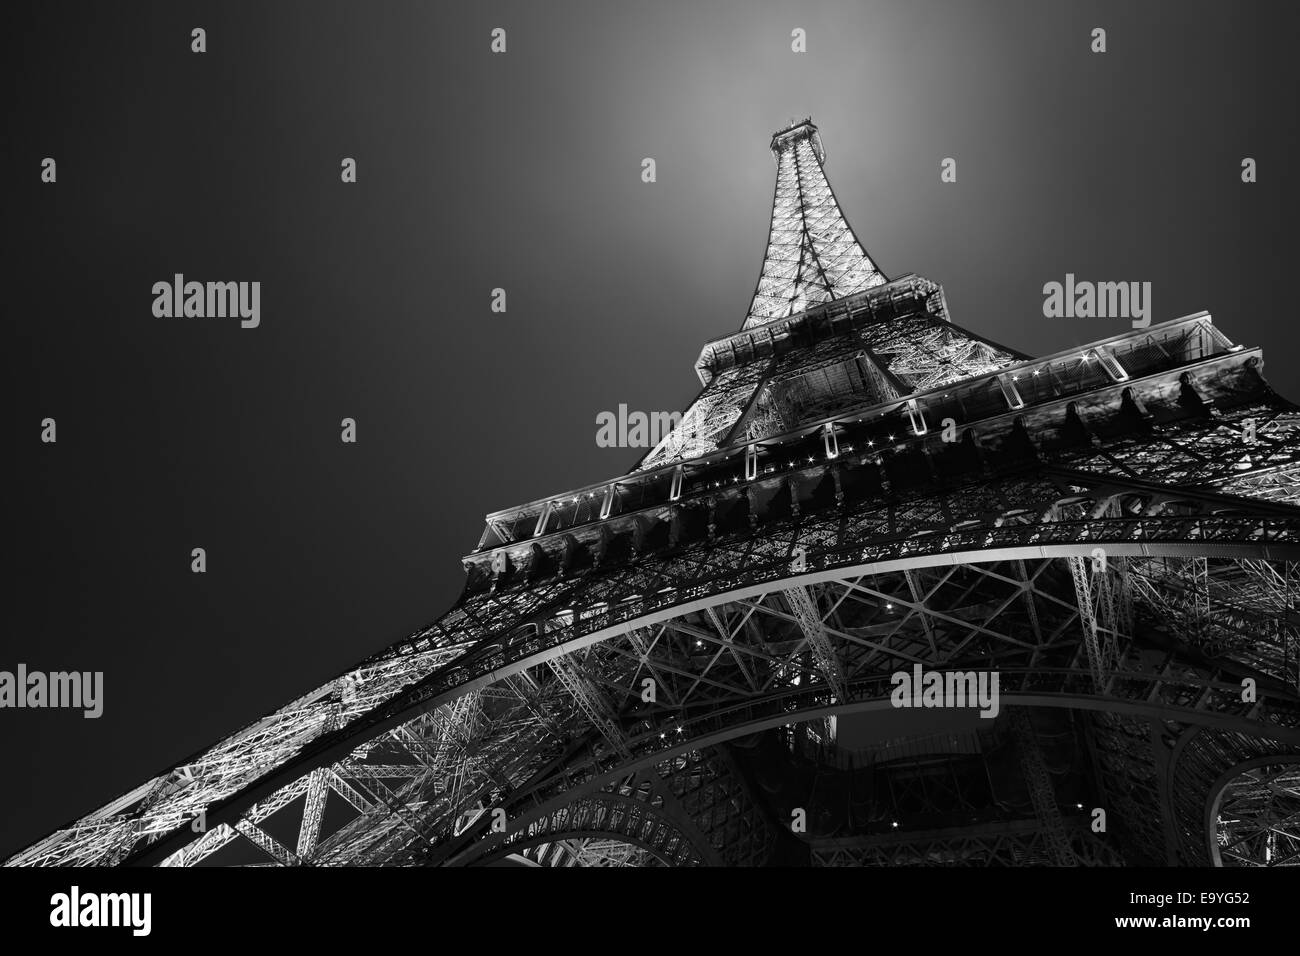 Eiffel tower in Paris at night, black and white, low angle view Stock Photo